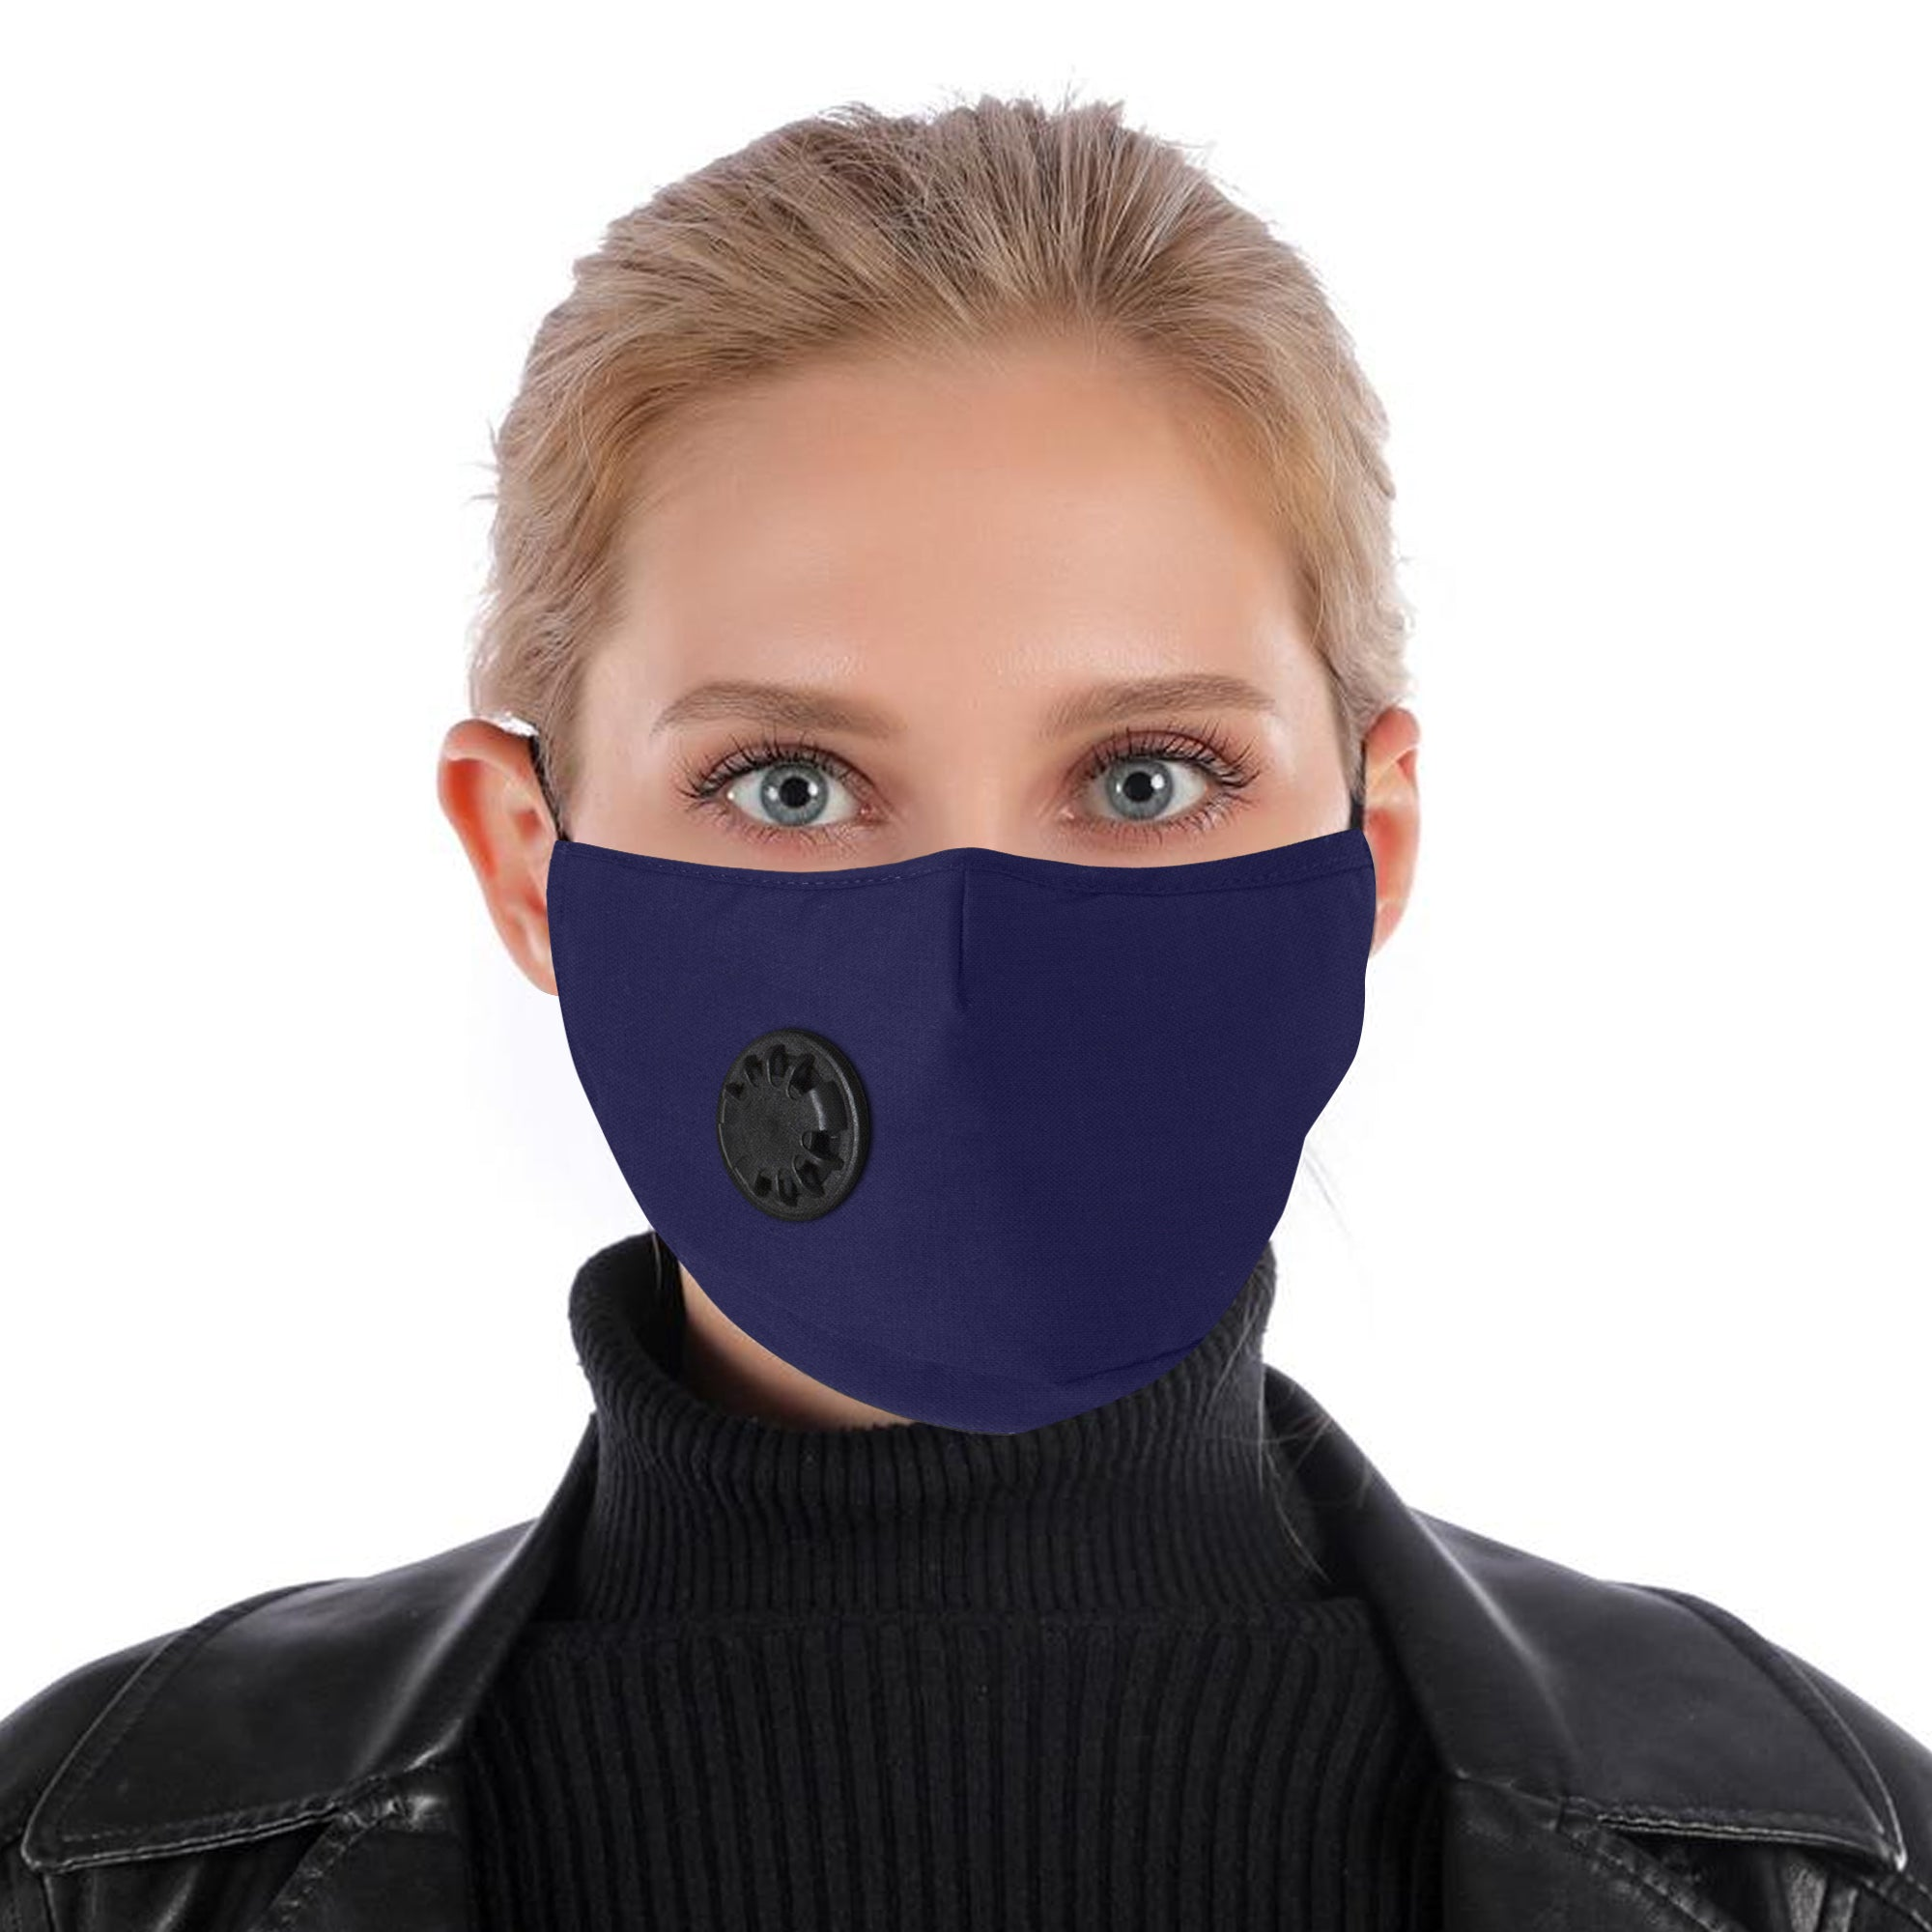 100% Cotton Face Mask Breathable Valved Protection Washable Reusable Fashion Cover Unisex by  TradeNRG